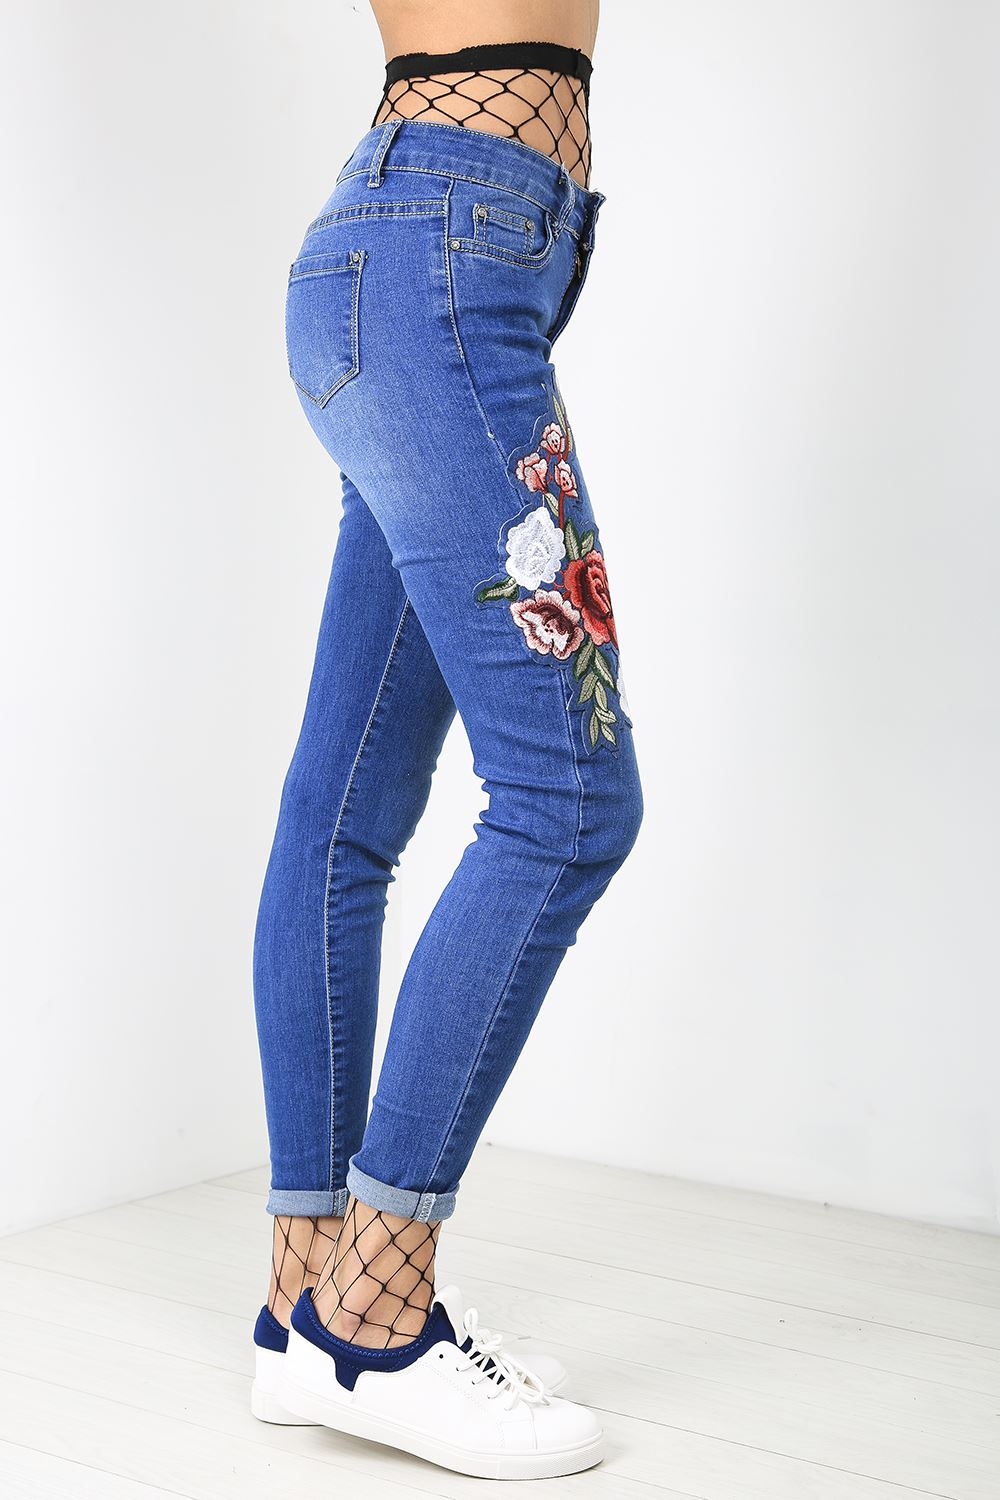 Womens denim jeans fade flower rose embroidered skinny fit